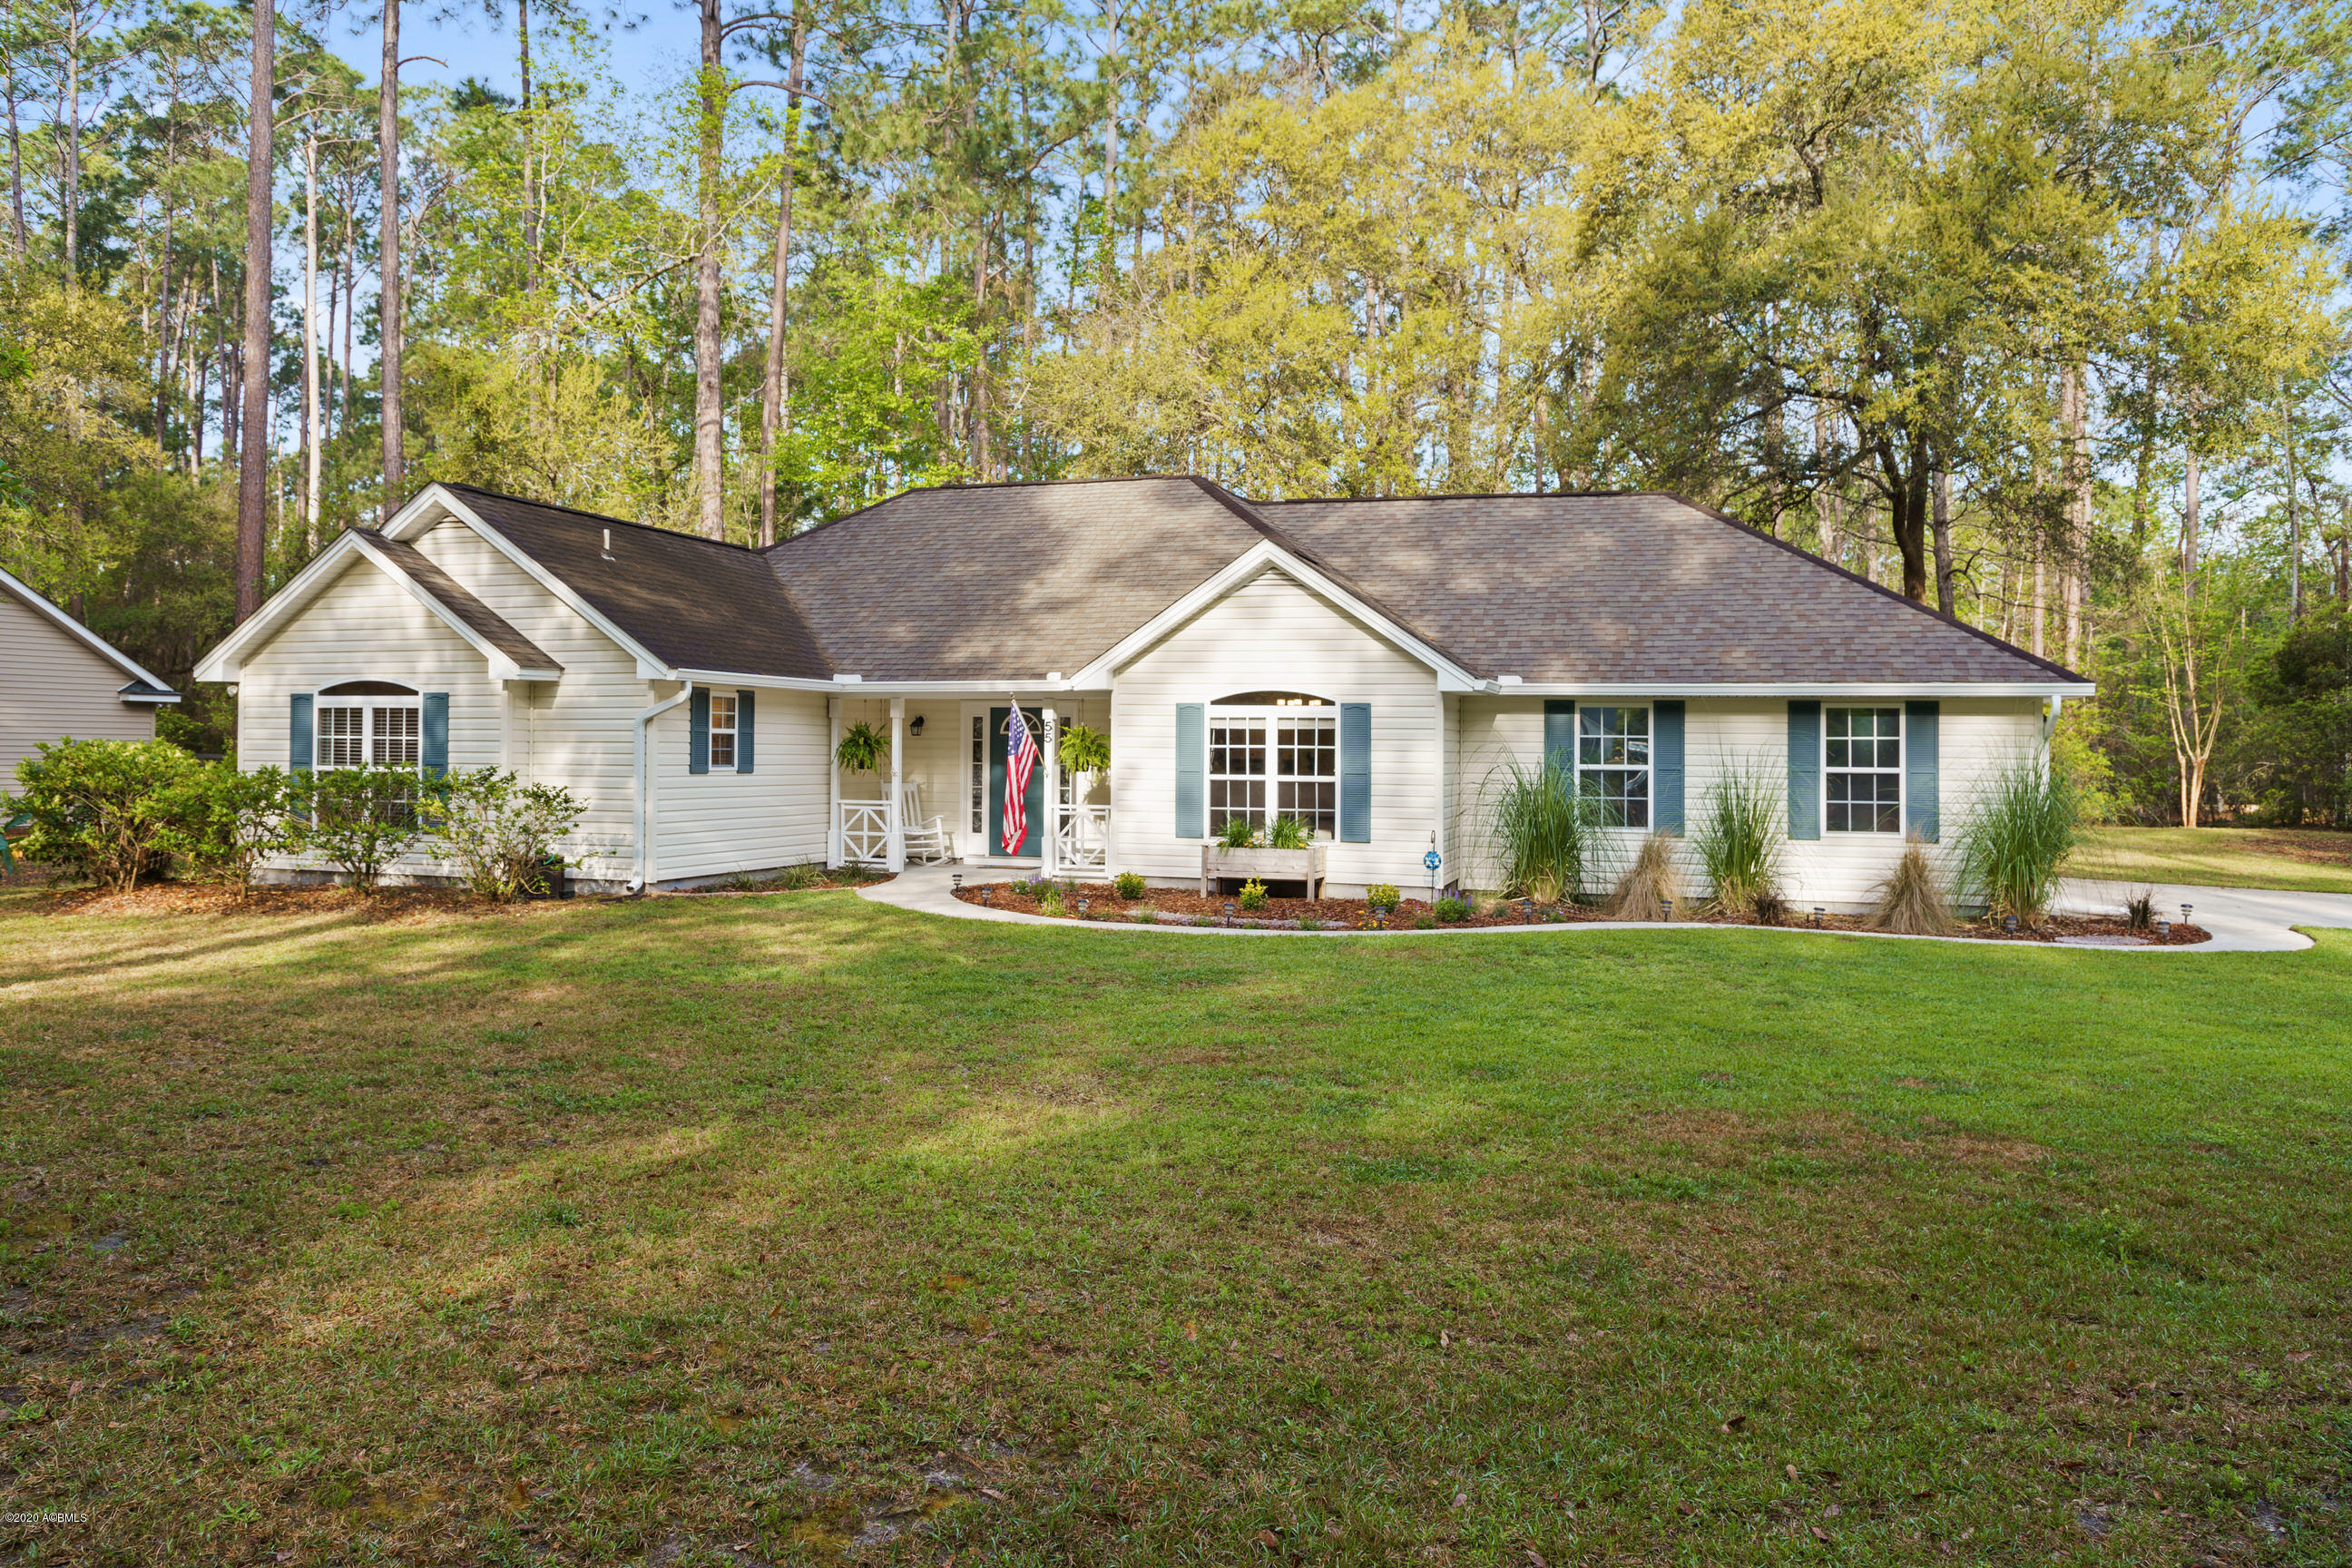 Photo of 55 Thomas Sumter Street, Beaufort, SC 29907